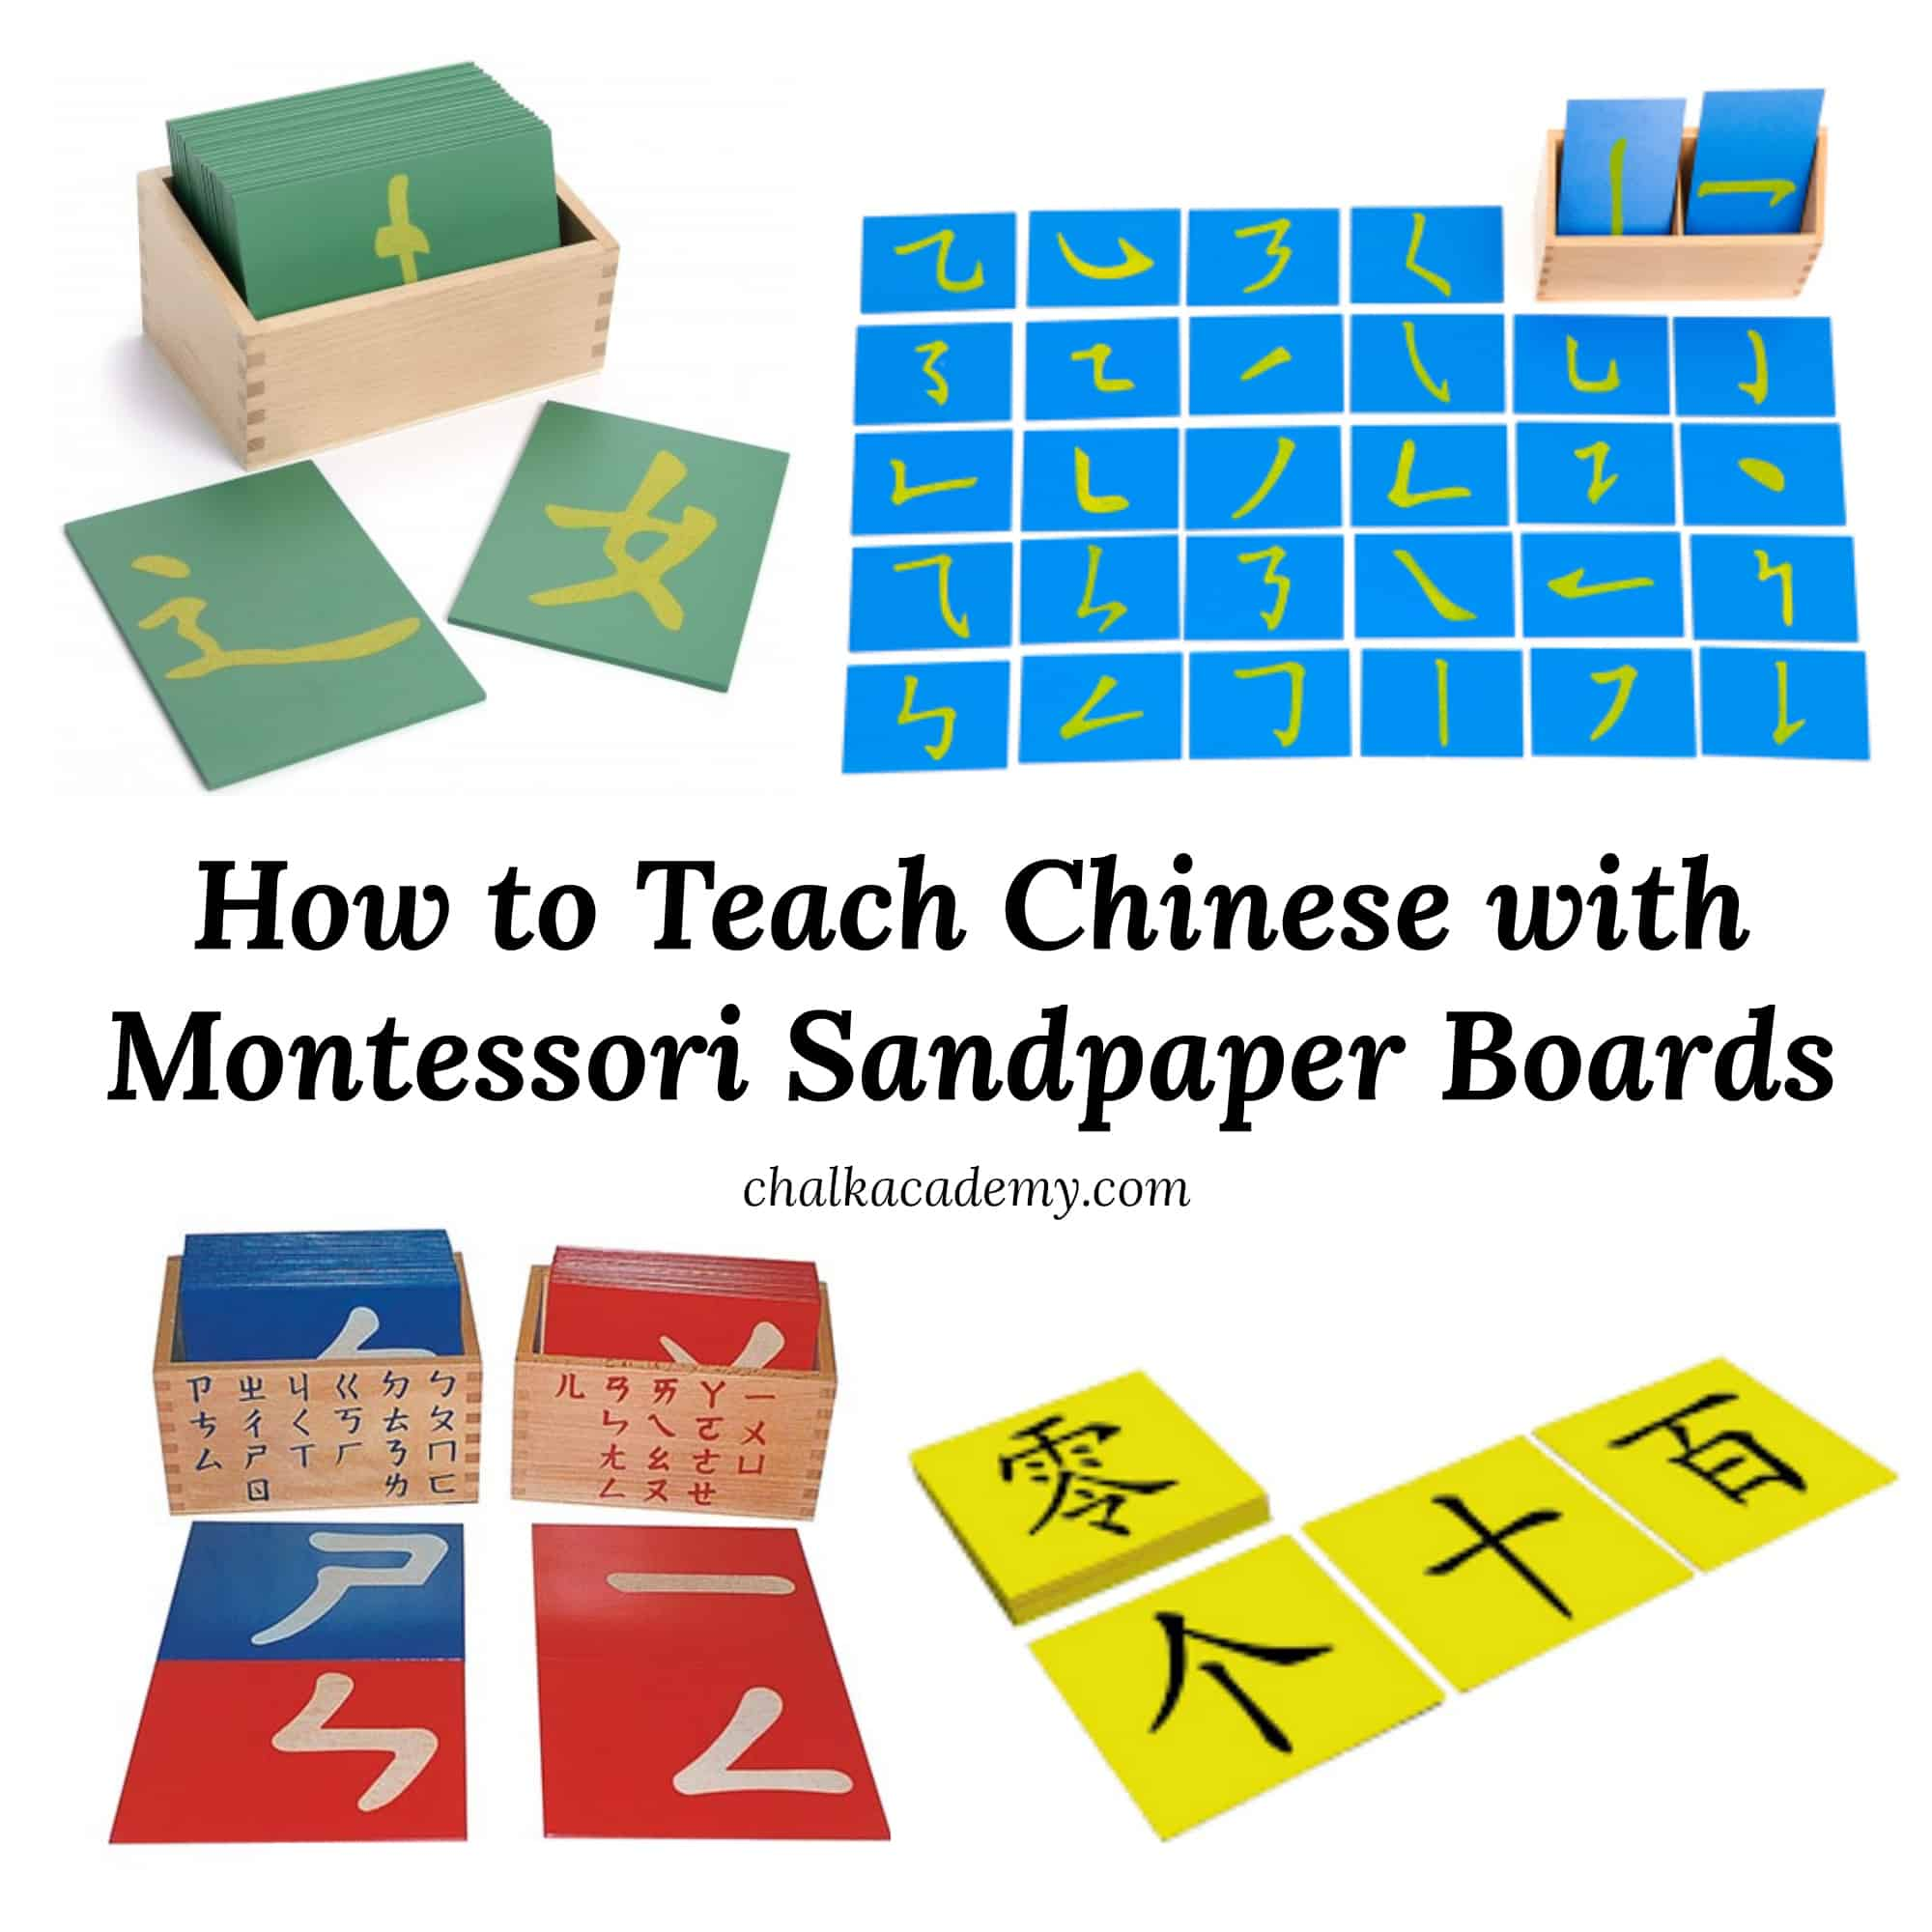 How to Teach Chinese with Montessori Sandpaper Characters